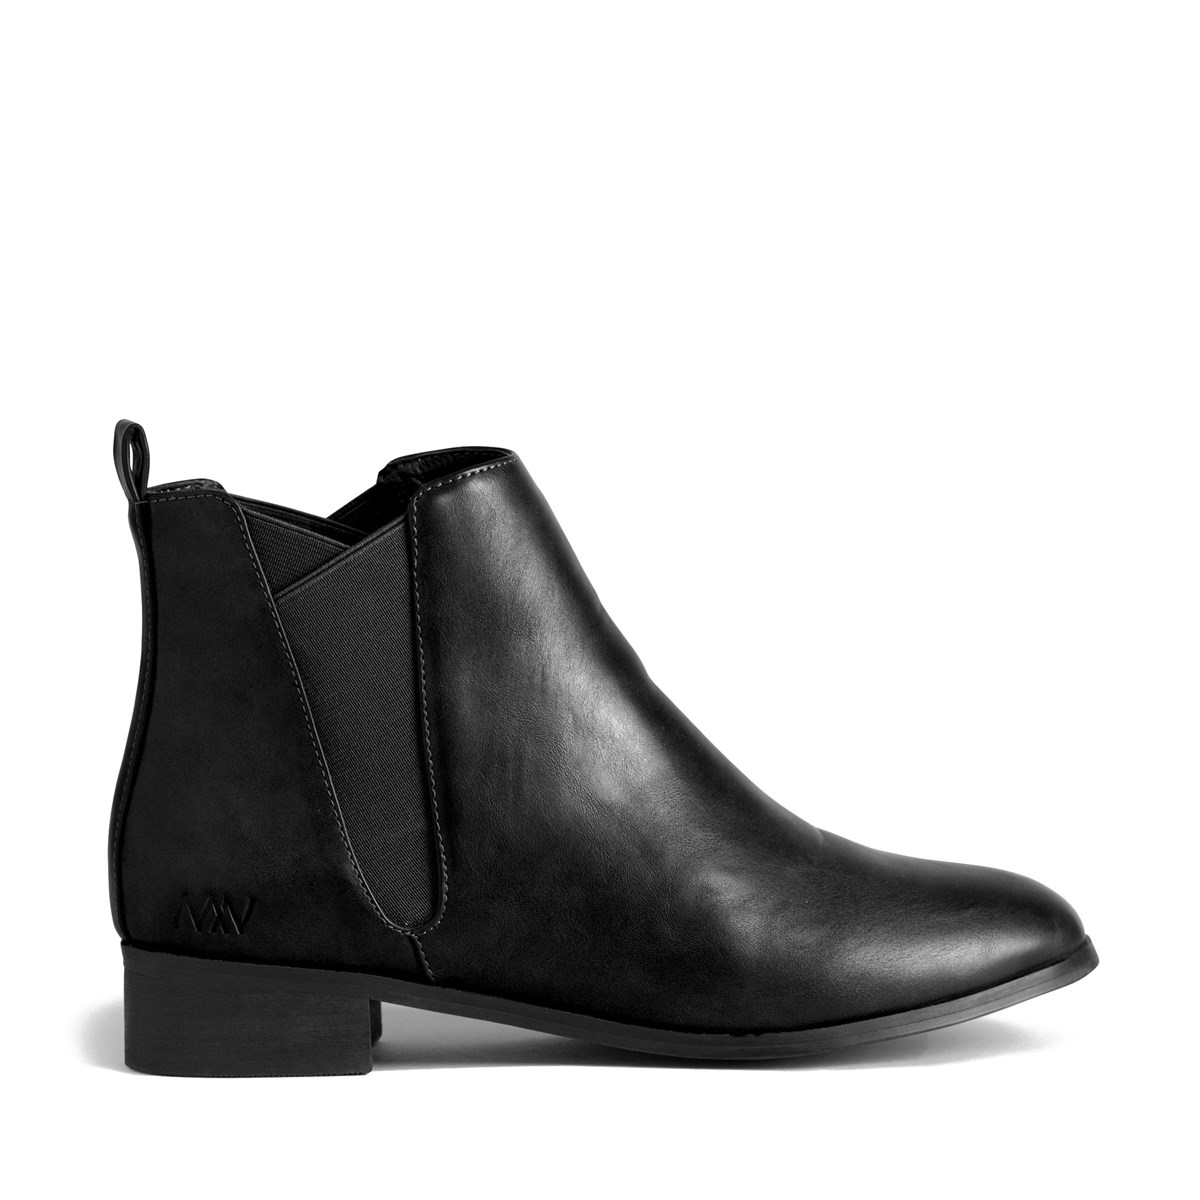 Women's Joliette Chelsea Boots in Black